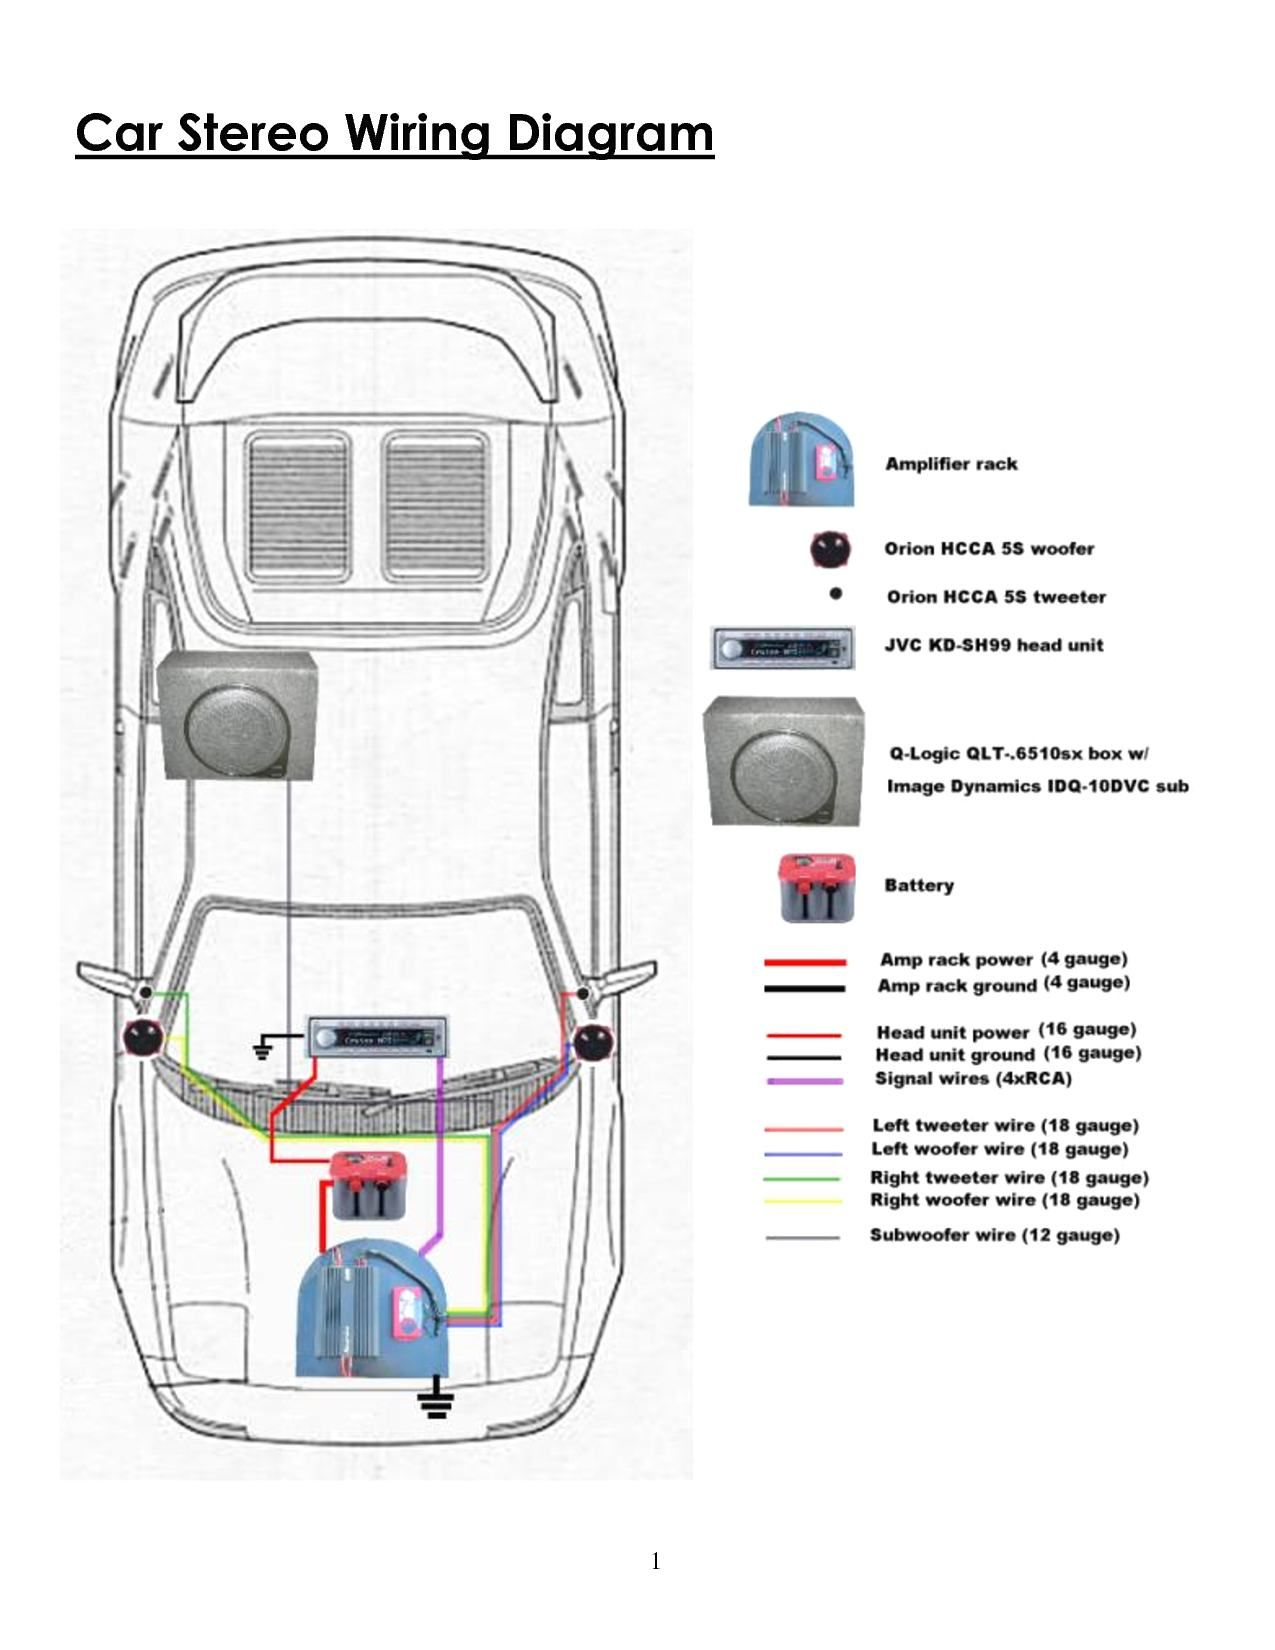 Basic Car Amp Wiring Diagram